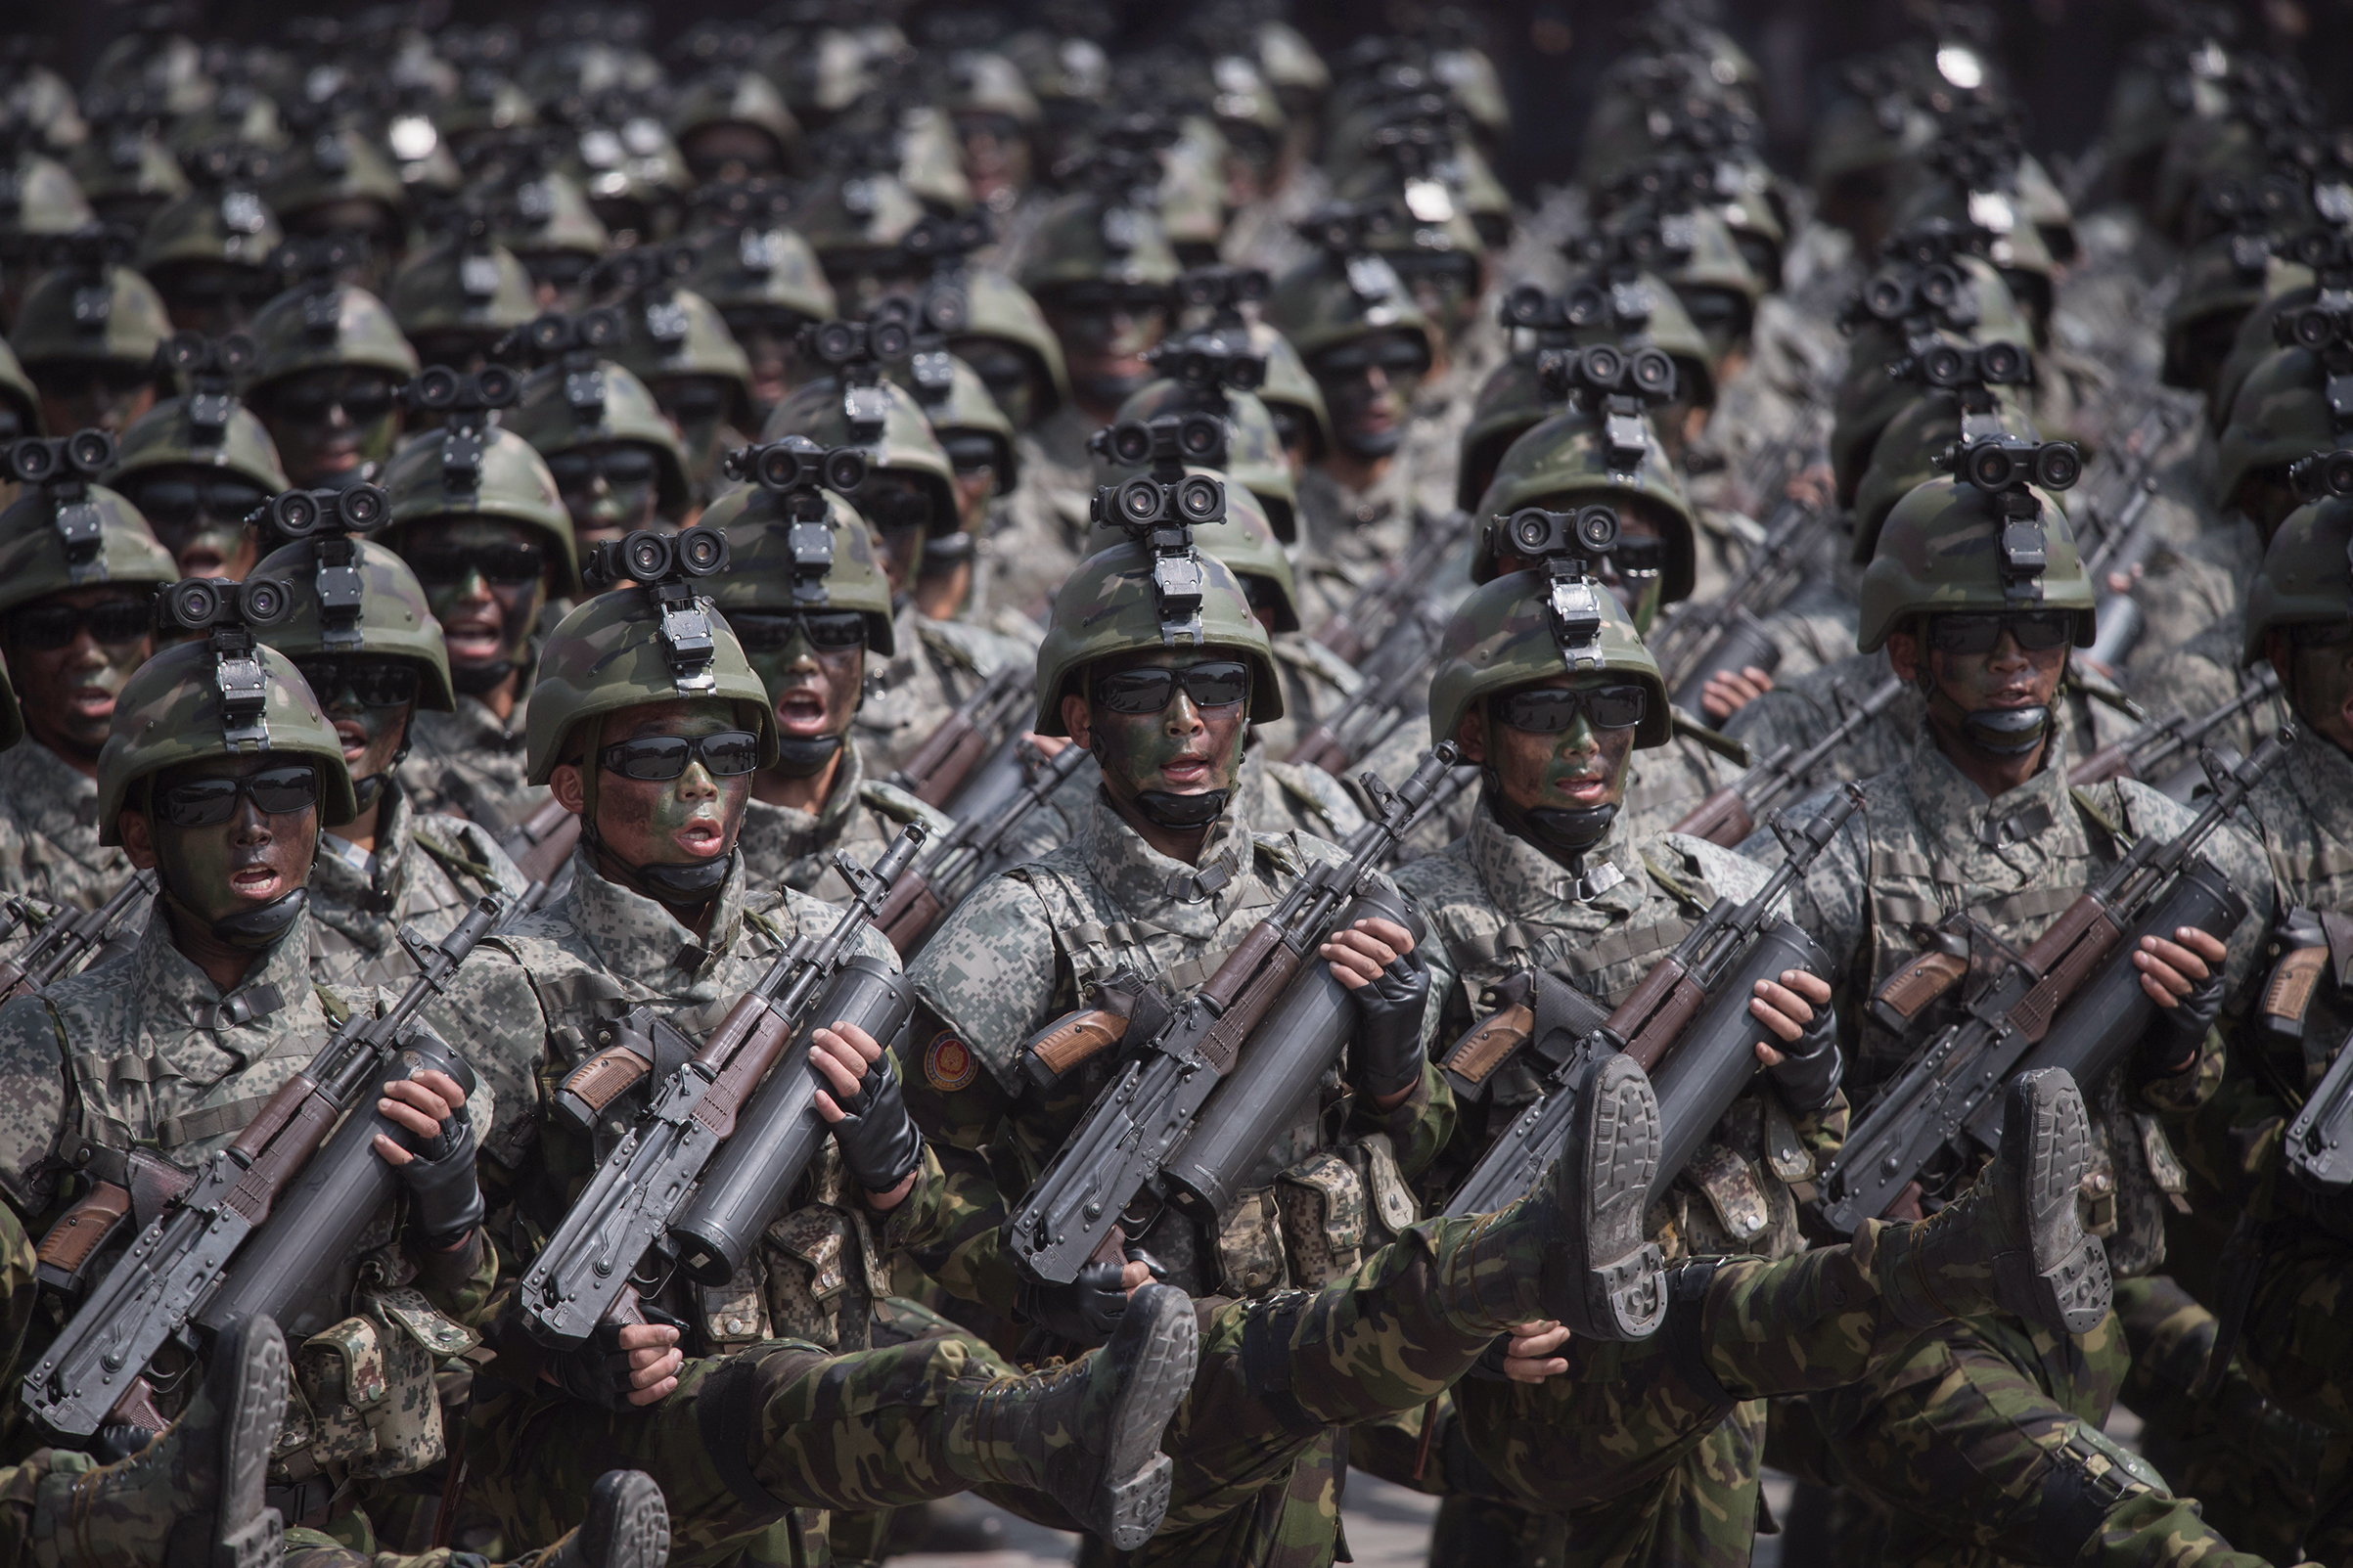 North Korean soldiers march in a military parade in Pyongyang on April 15